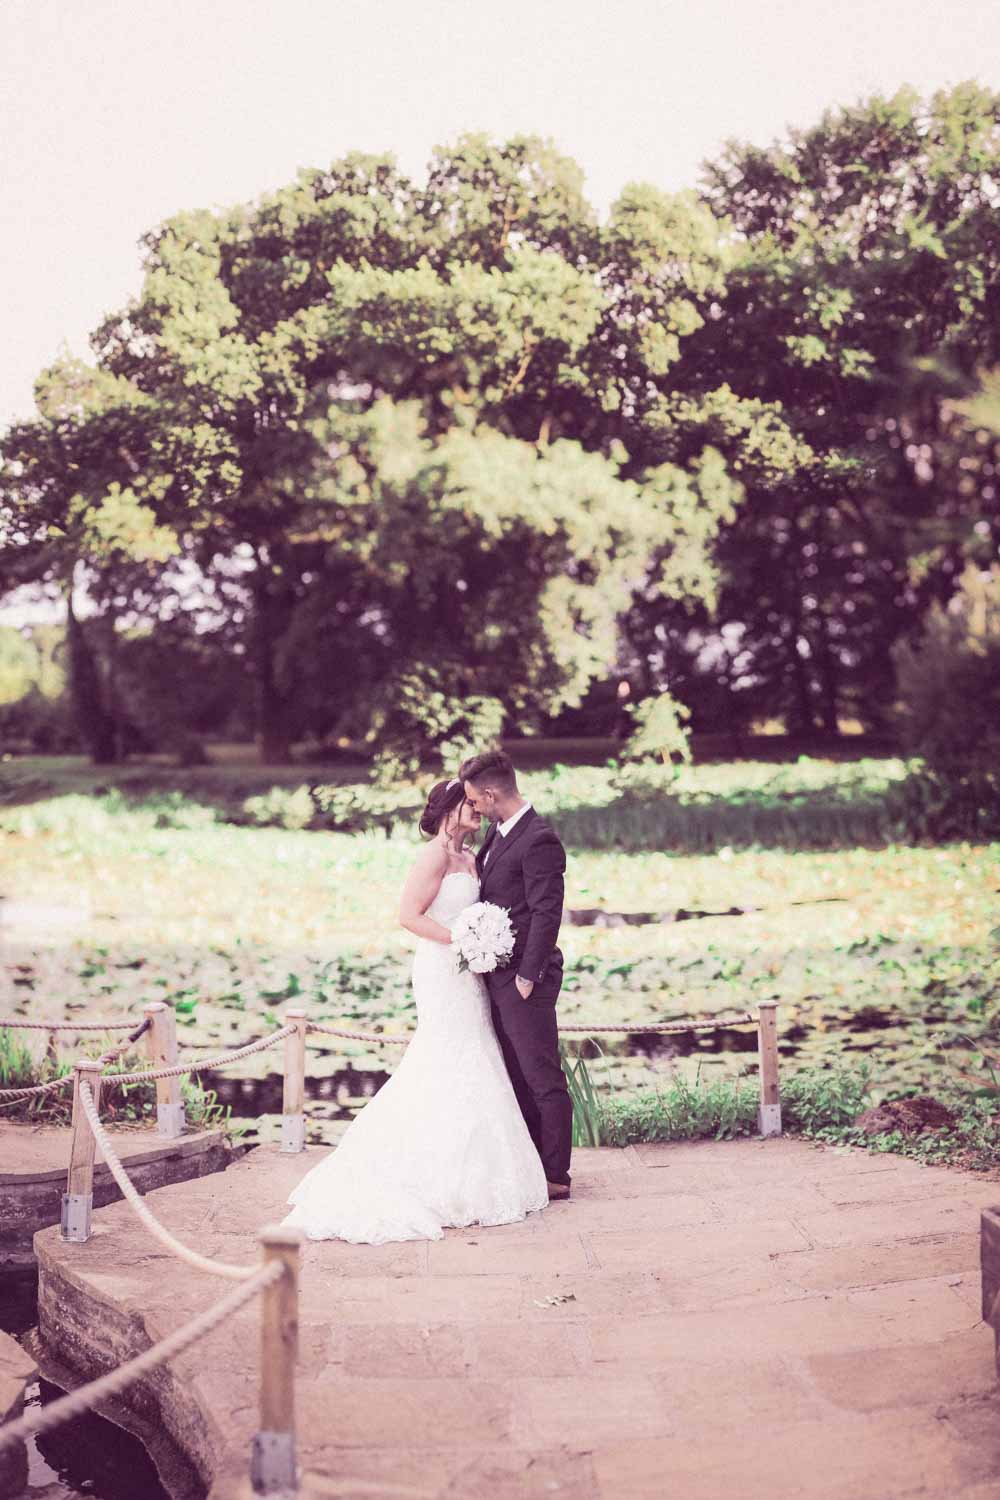 Newlyweds embrace in front of a pond with green lilies and trees at Cave Castle